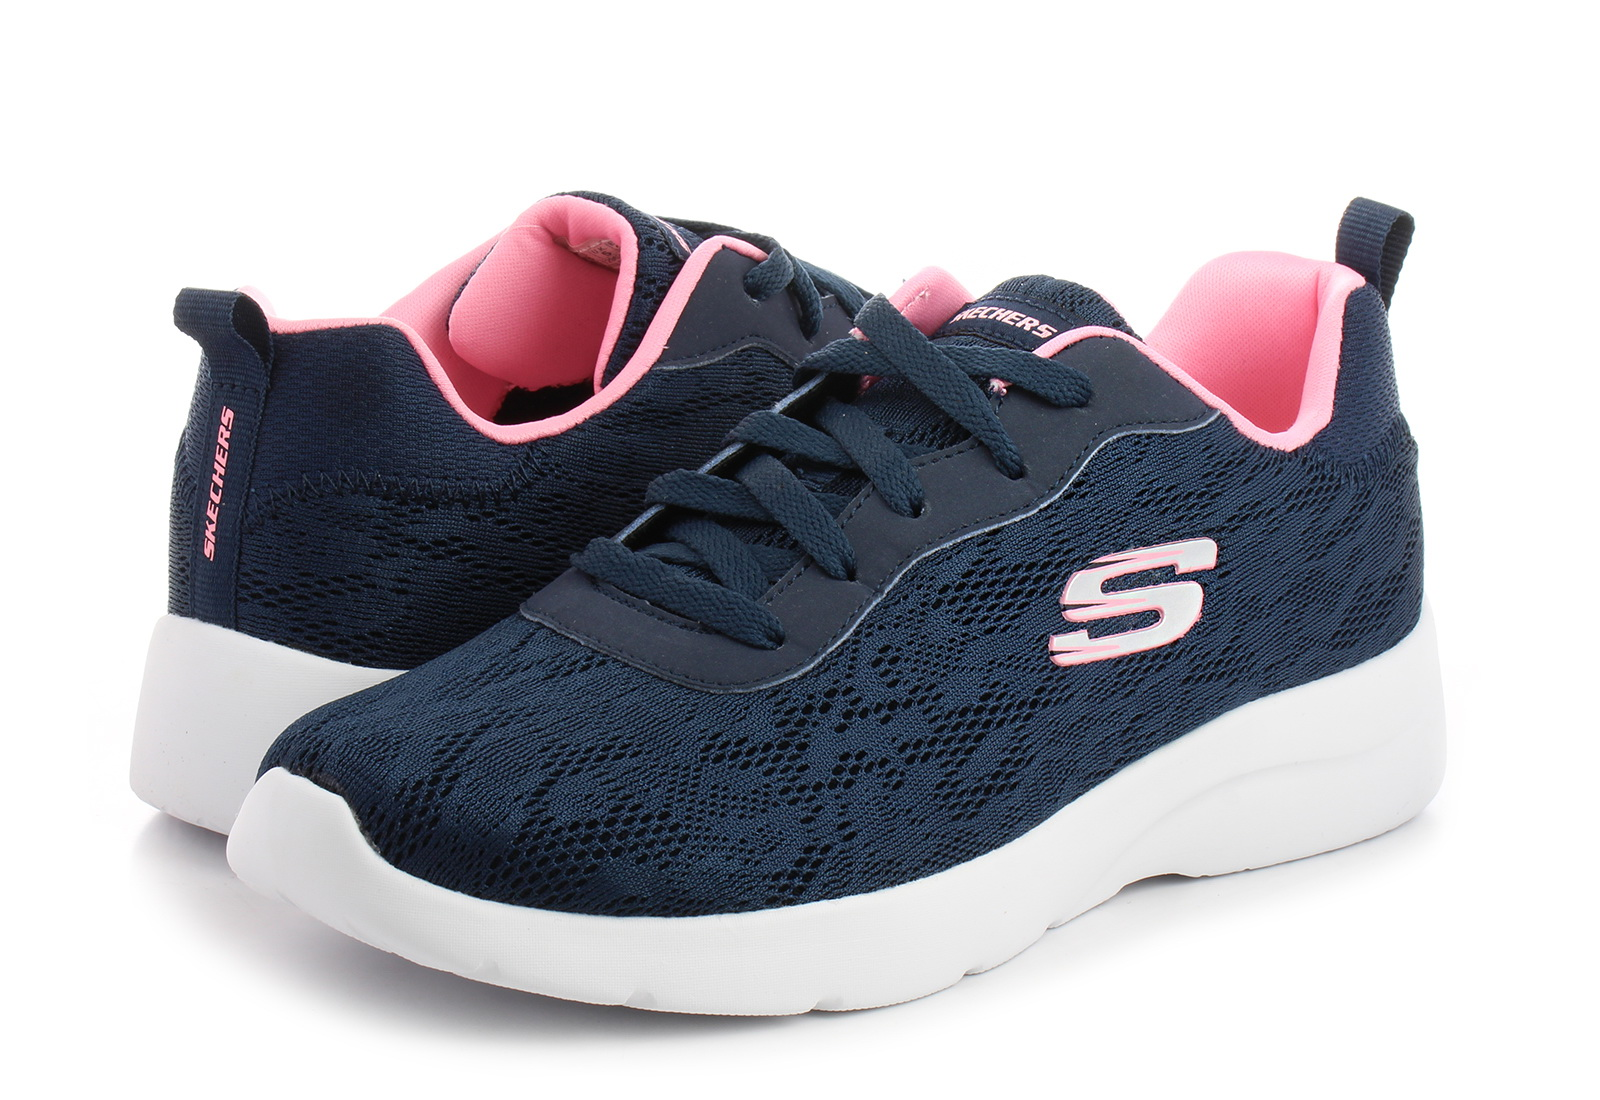 Skechers Topánky Dynamight 2.0 - Homespun